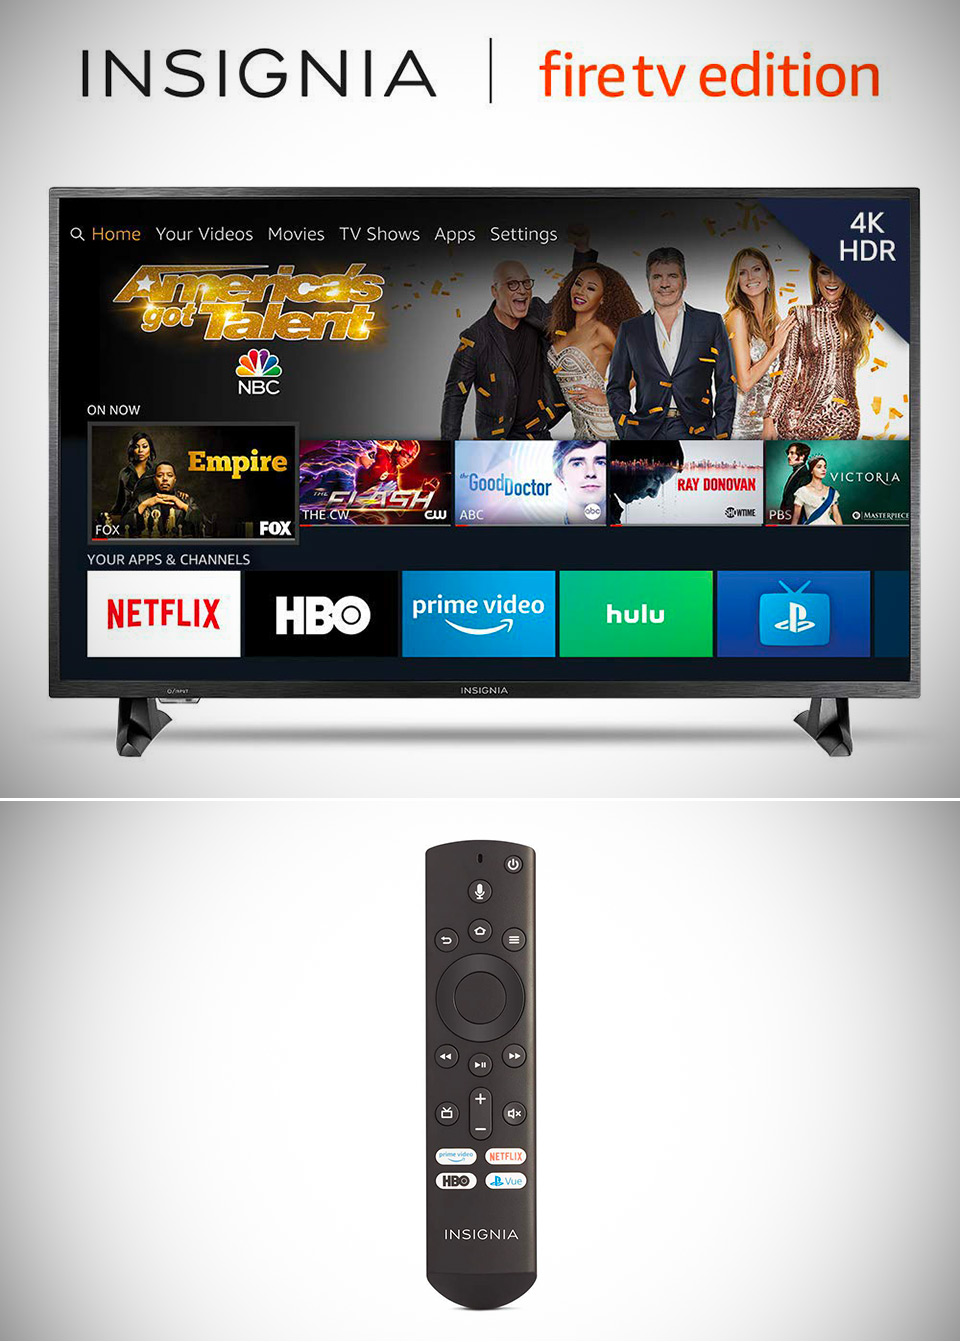 Insignia Fire TV Edition